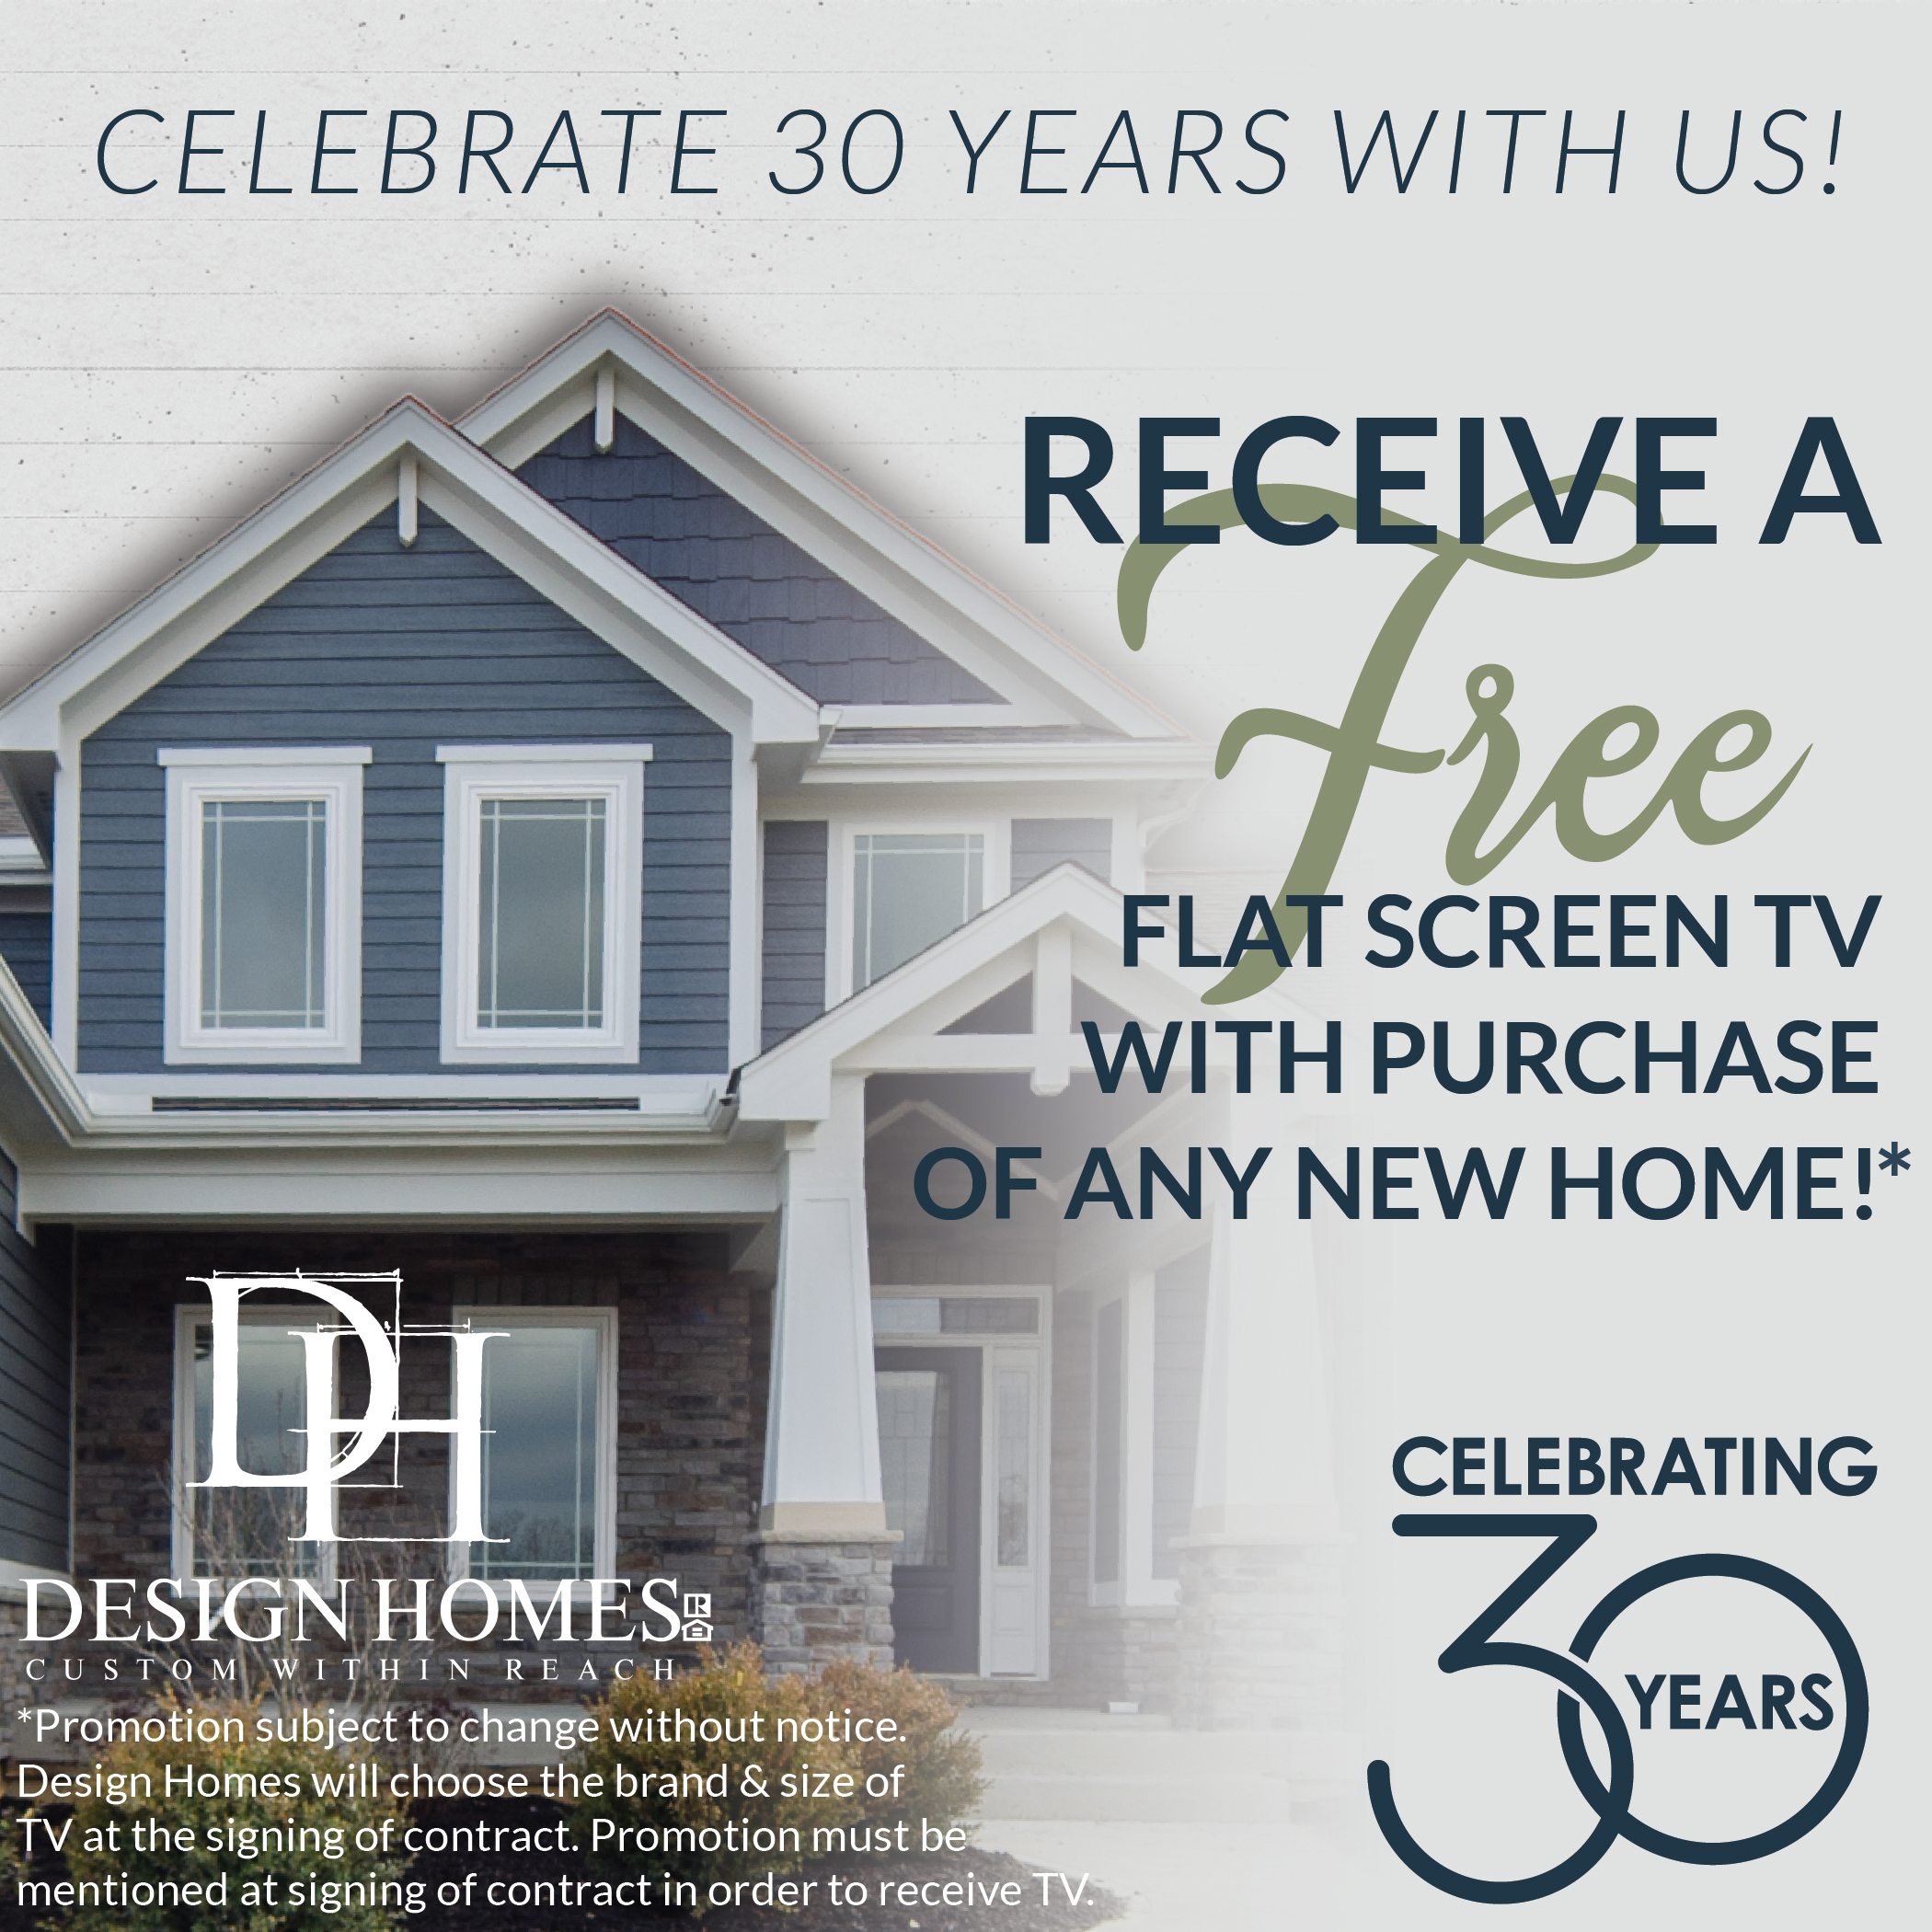 Celebrating 30 years of custom building dream, at Design Homes & Development.